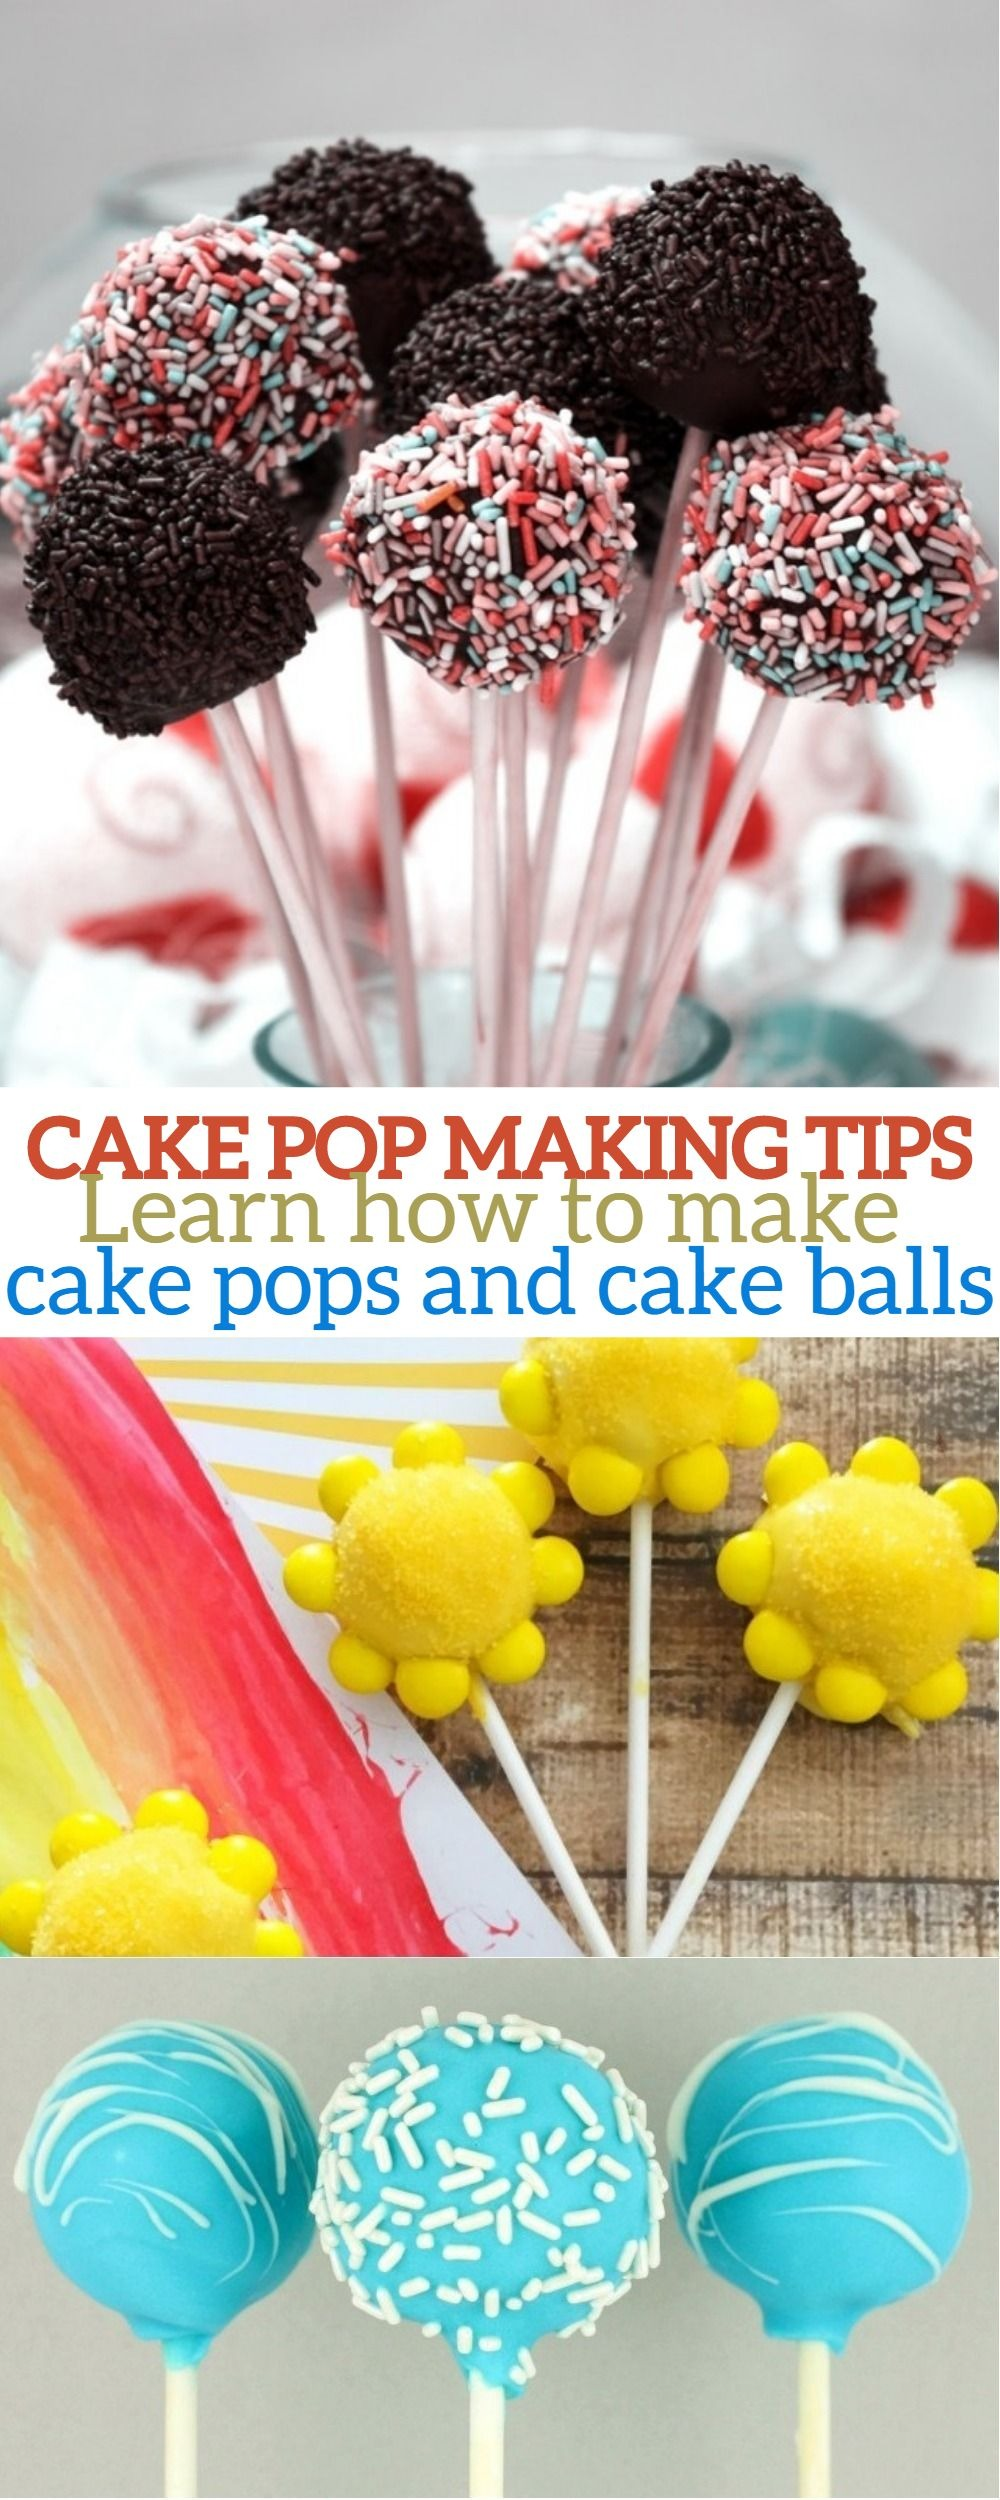 How To Make Chocolate For Cake Balls